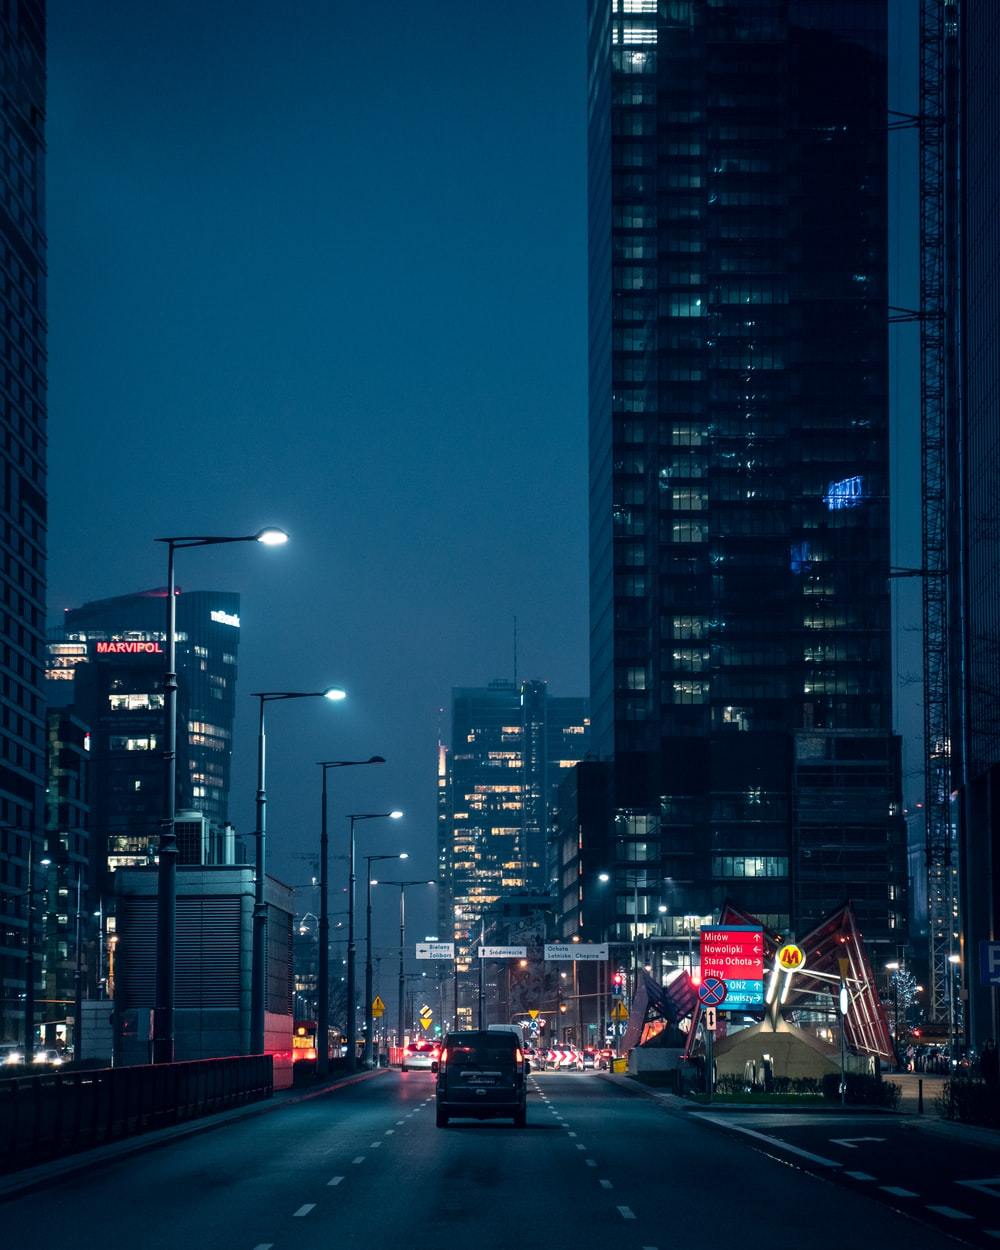 cars on road near high rise buildings during night time